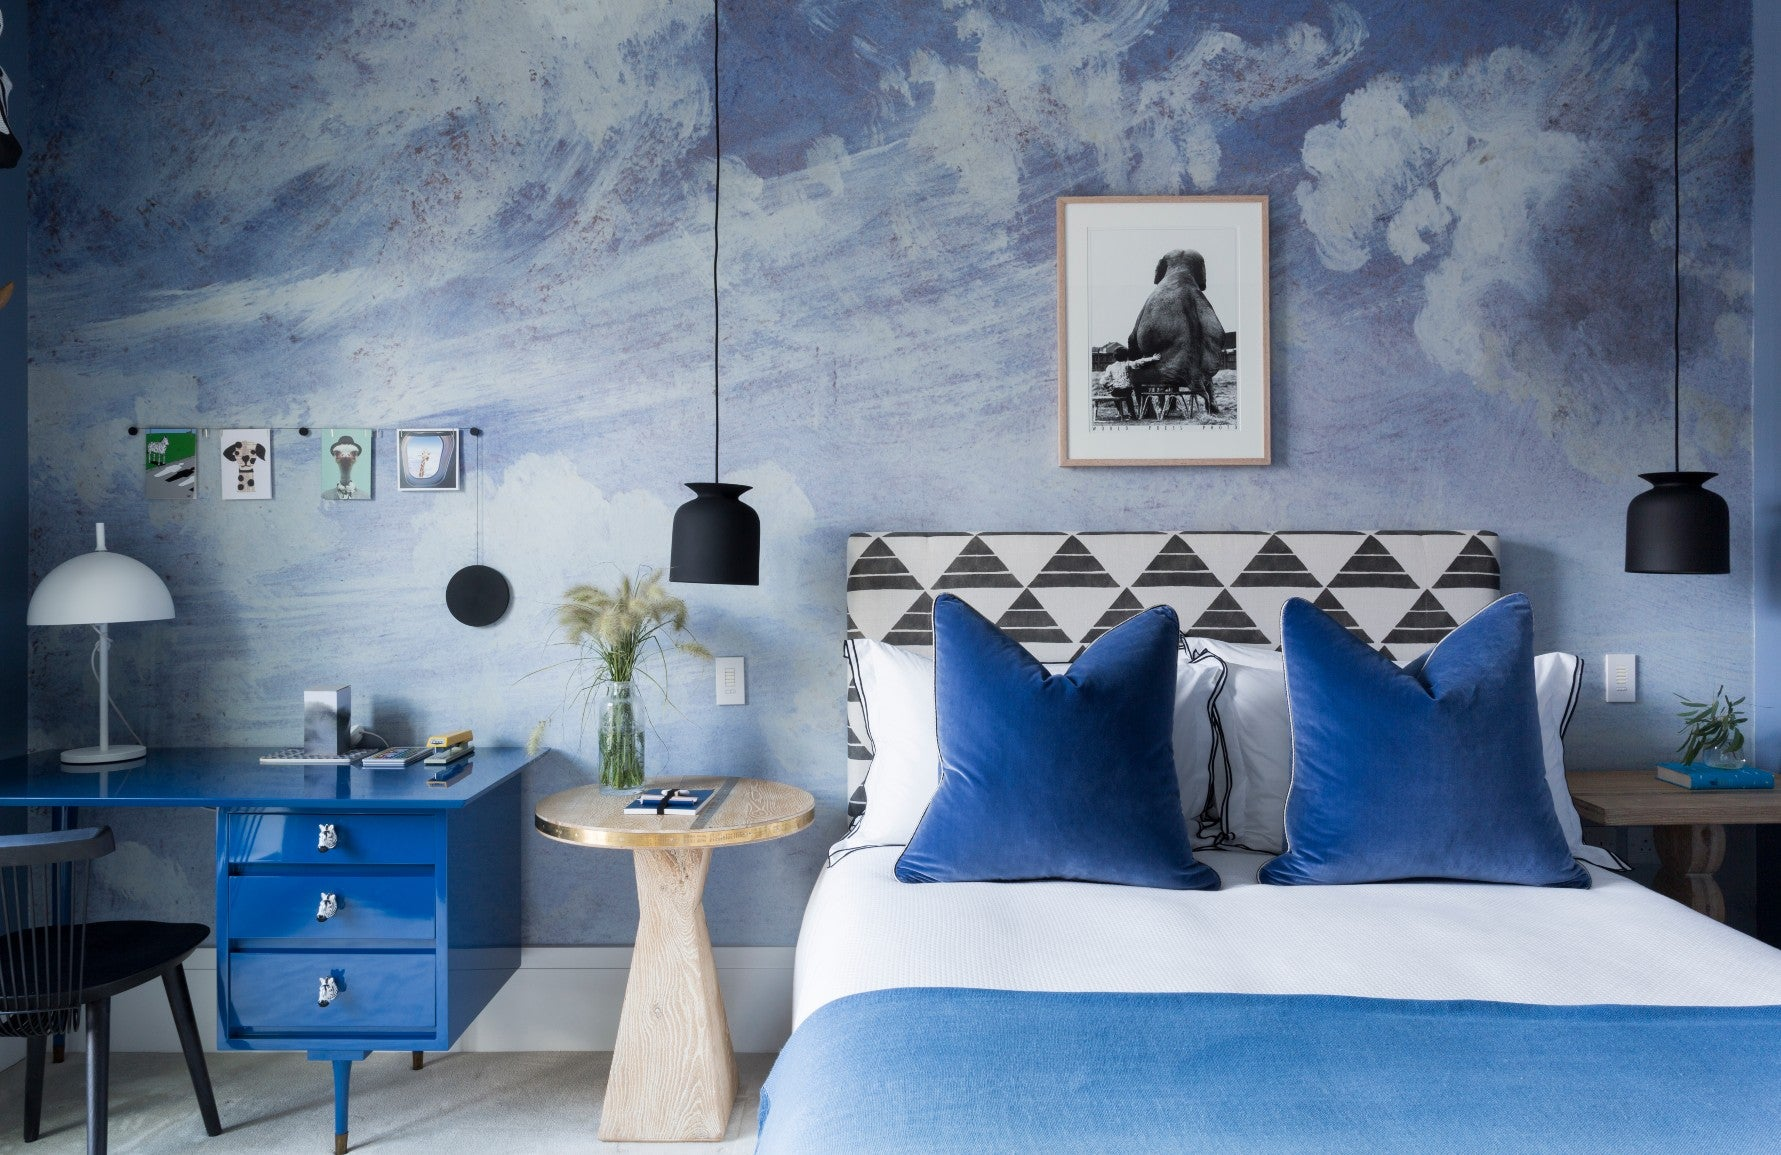 Childrens Bedroom Ideas _ Studio Ashby _ Read more in the LuxDeco.com Style Guide